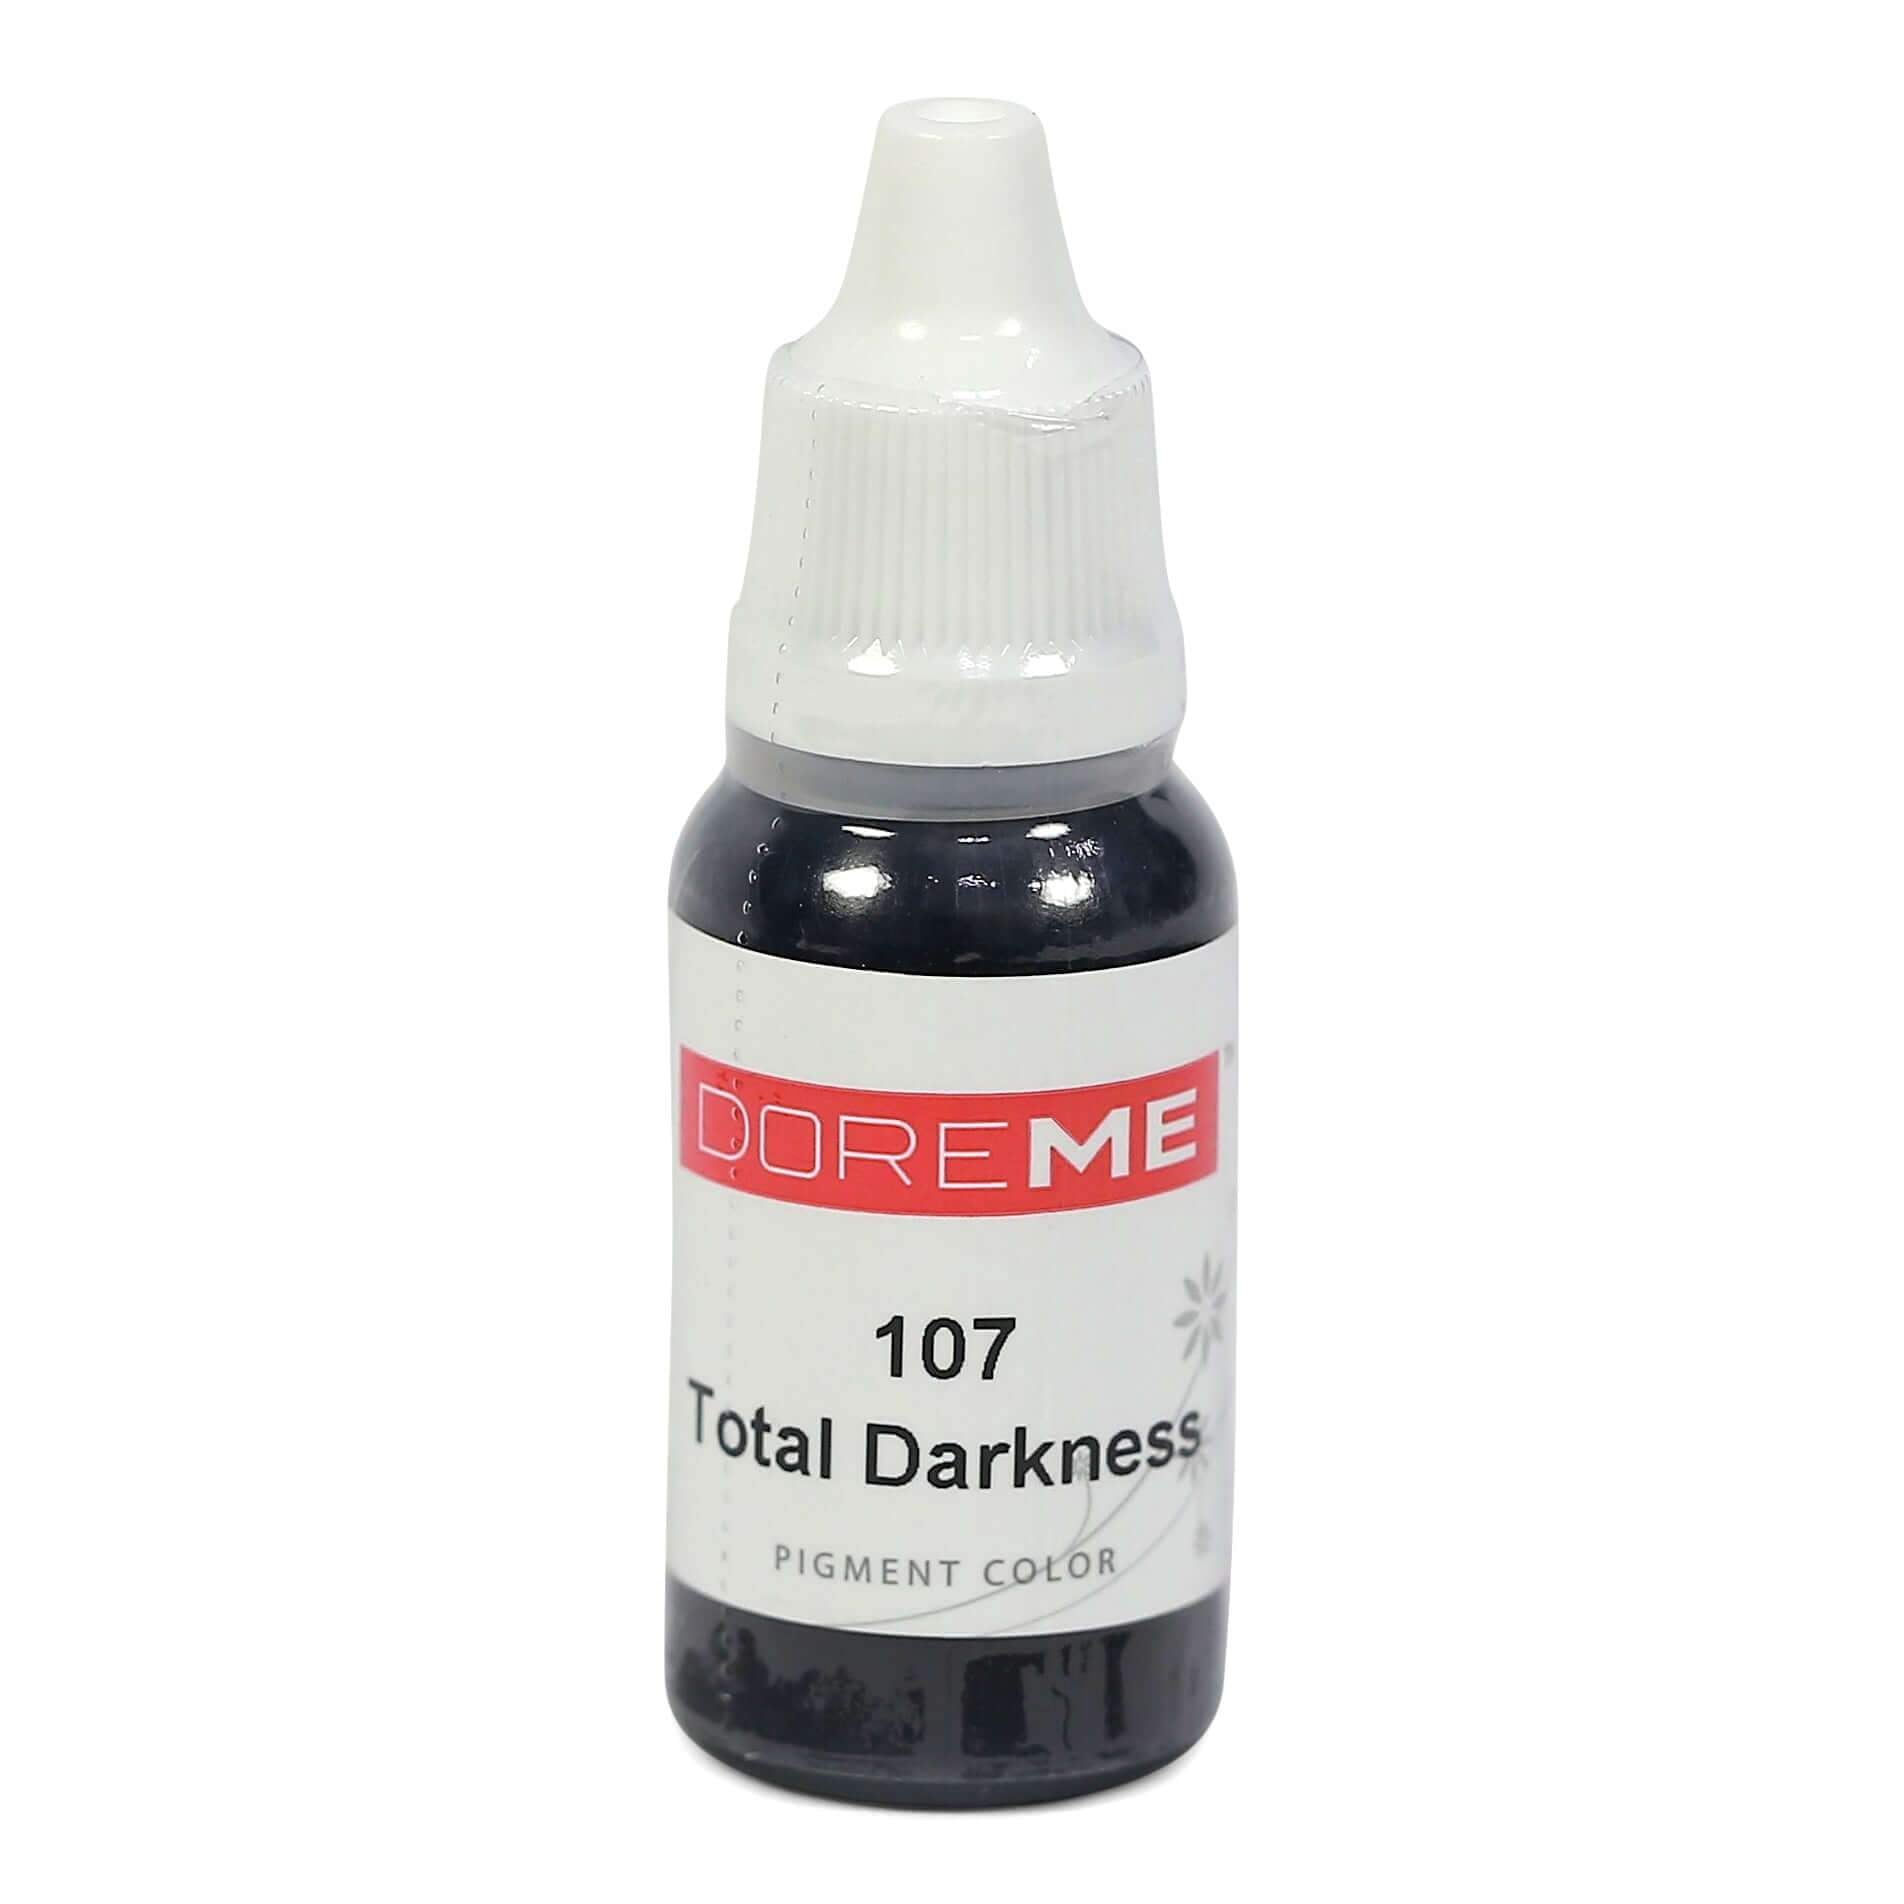 Permanent Makeup pigments Doreme Micropigmentation Eyebrow, Eyeliner, Lip Colours 107 Total Darkness (c) - Beautiful Ink UK trade and wholesale supplier